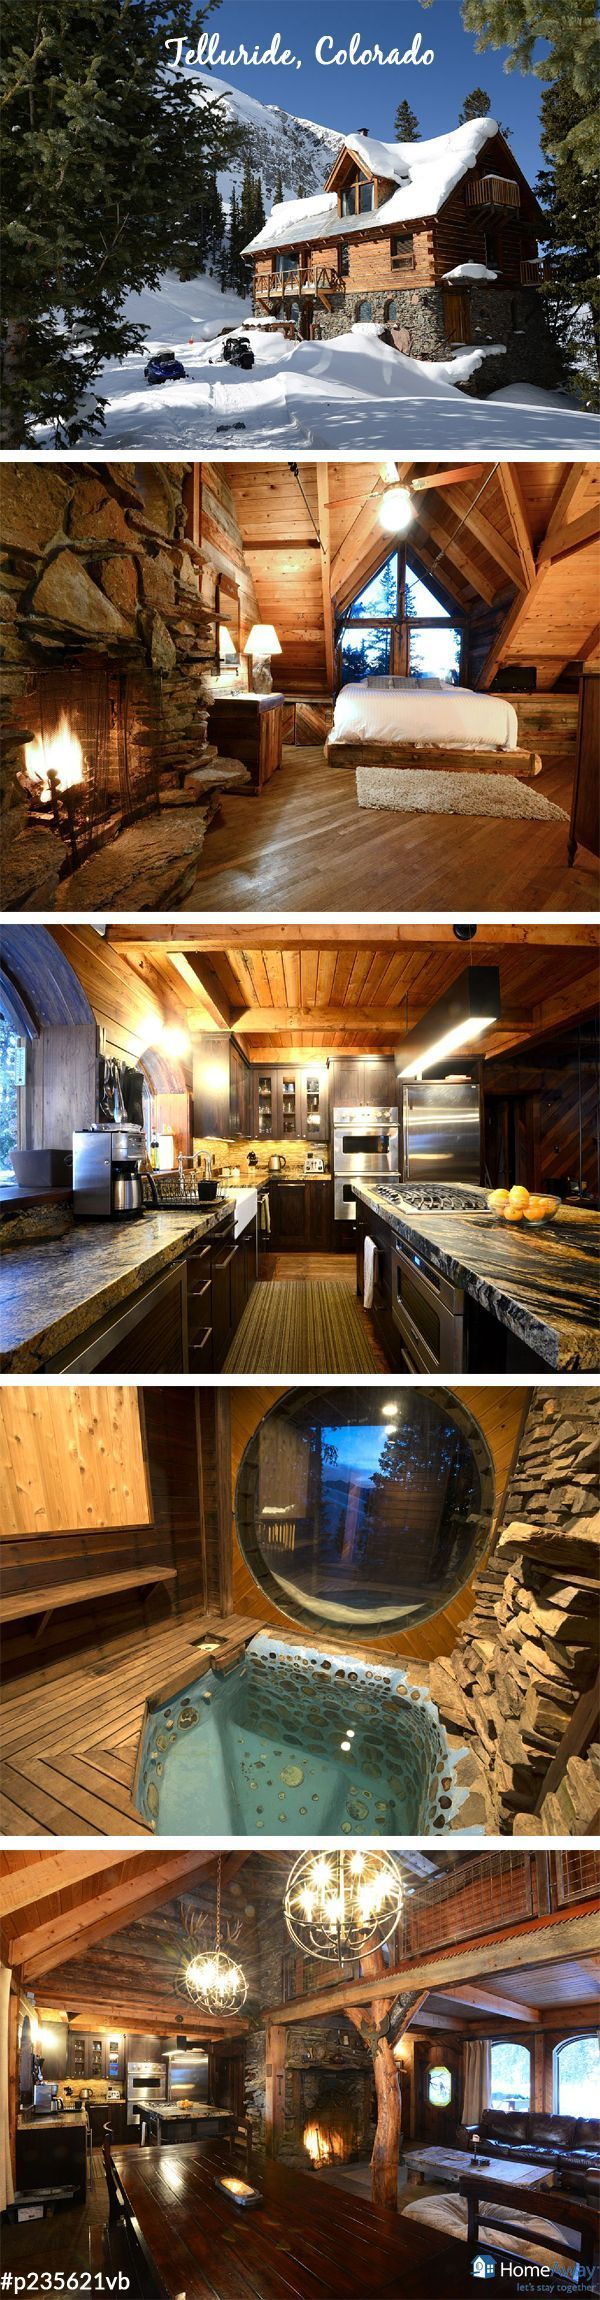 skiing your perfect Spring Break vacation? This cozy Telluride, Colorado cabin will be a perfect vacation home for you then! via